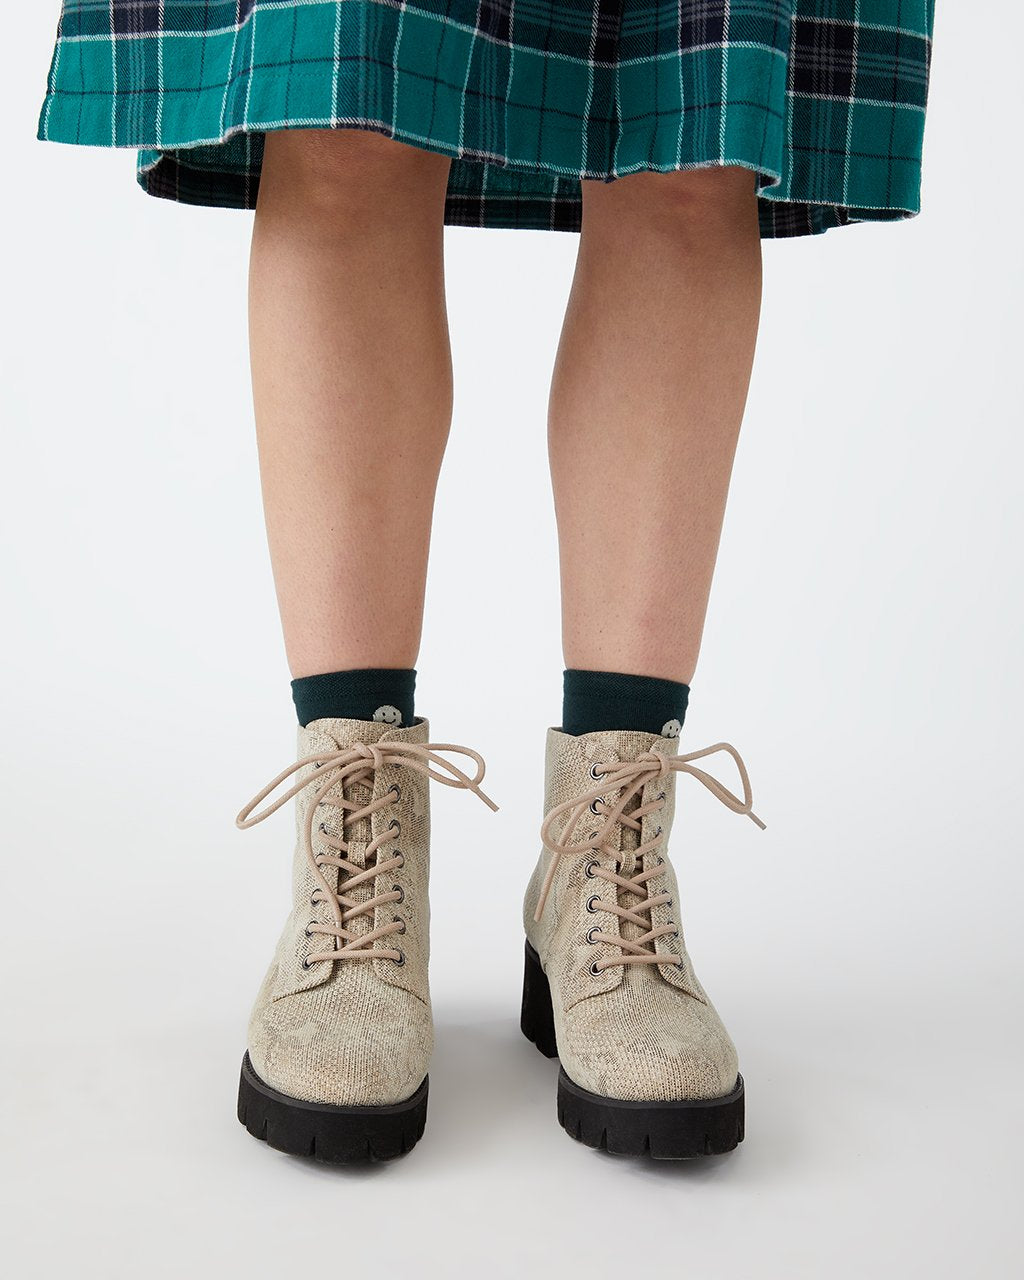 Faux snakeskin print lace up boots.